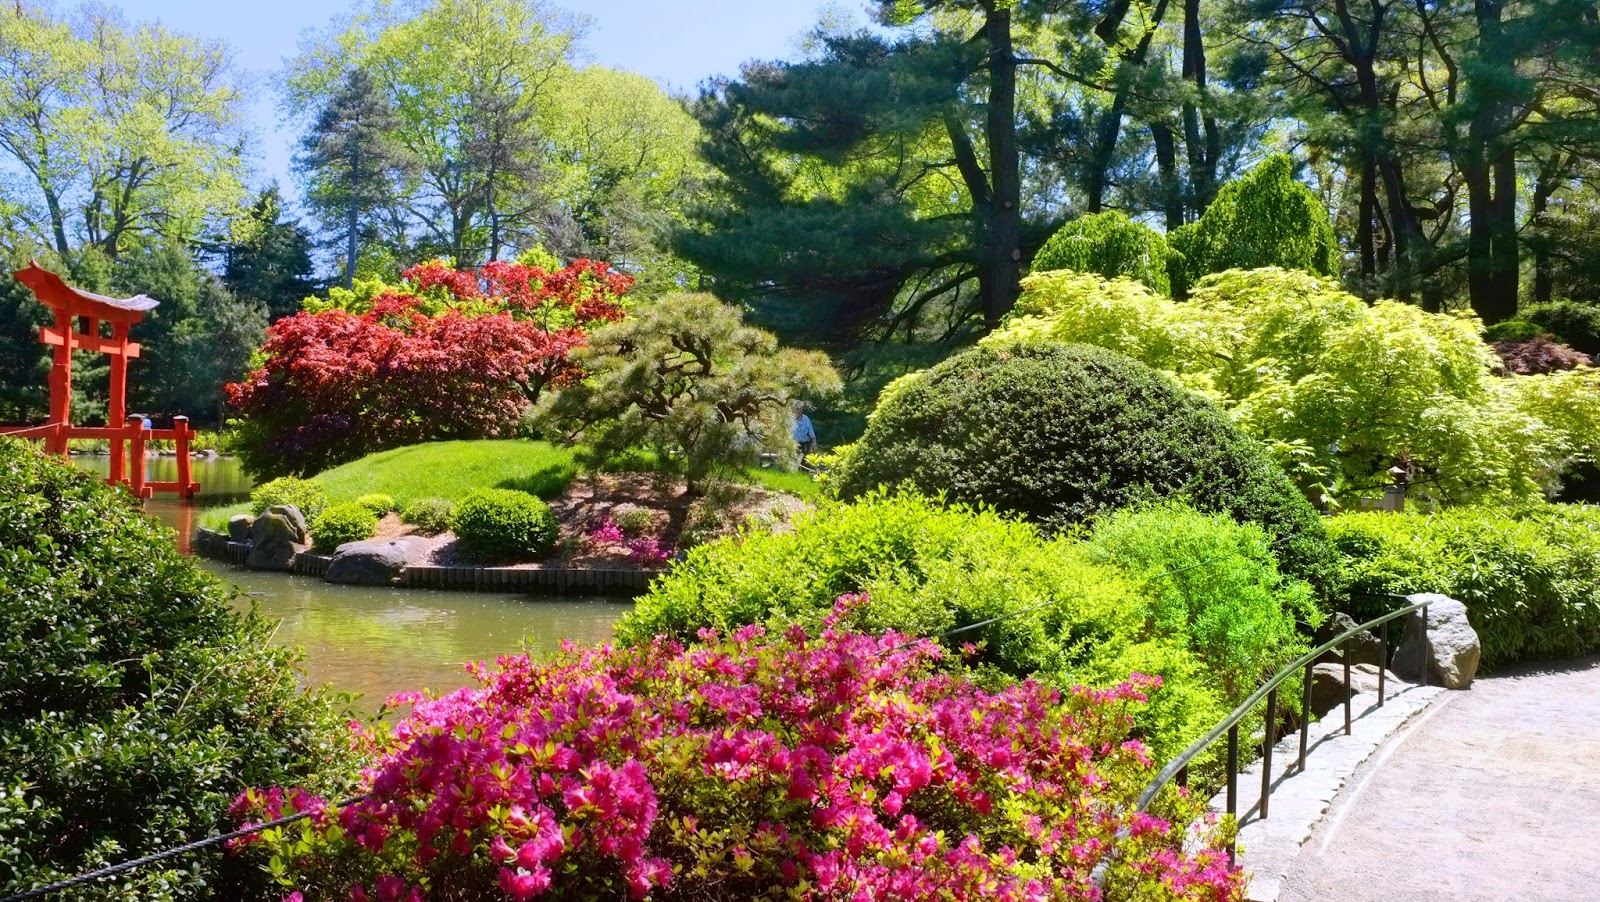 Get wickd repurpose refill relive - Brooklyn botanical garden free admission ...